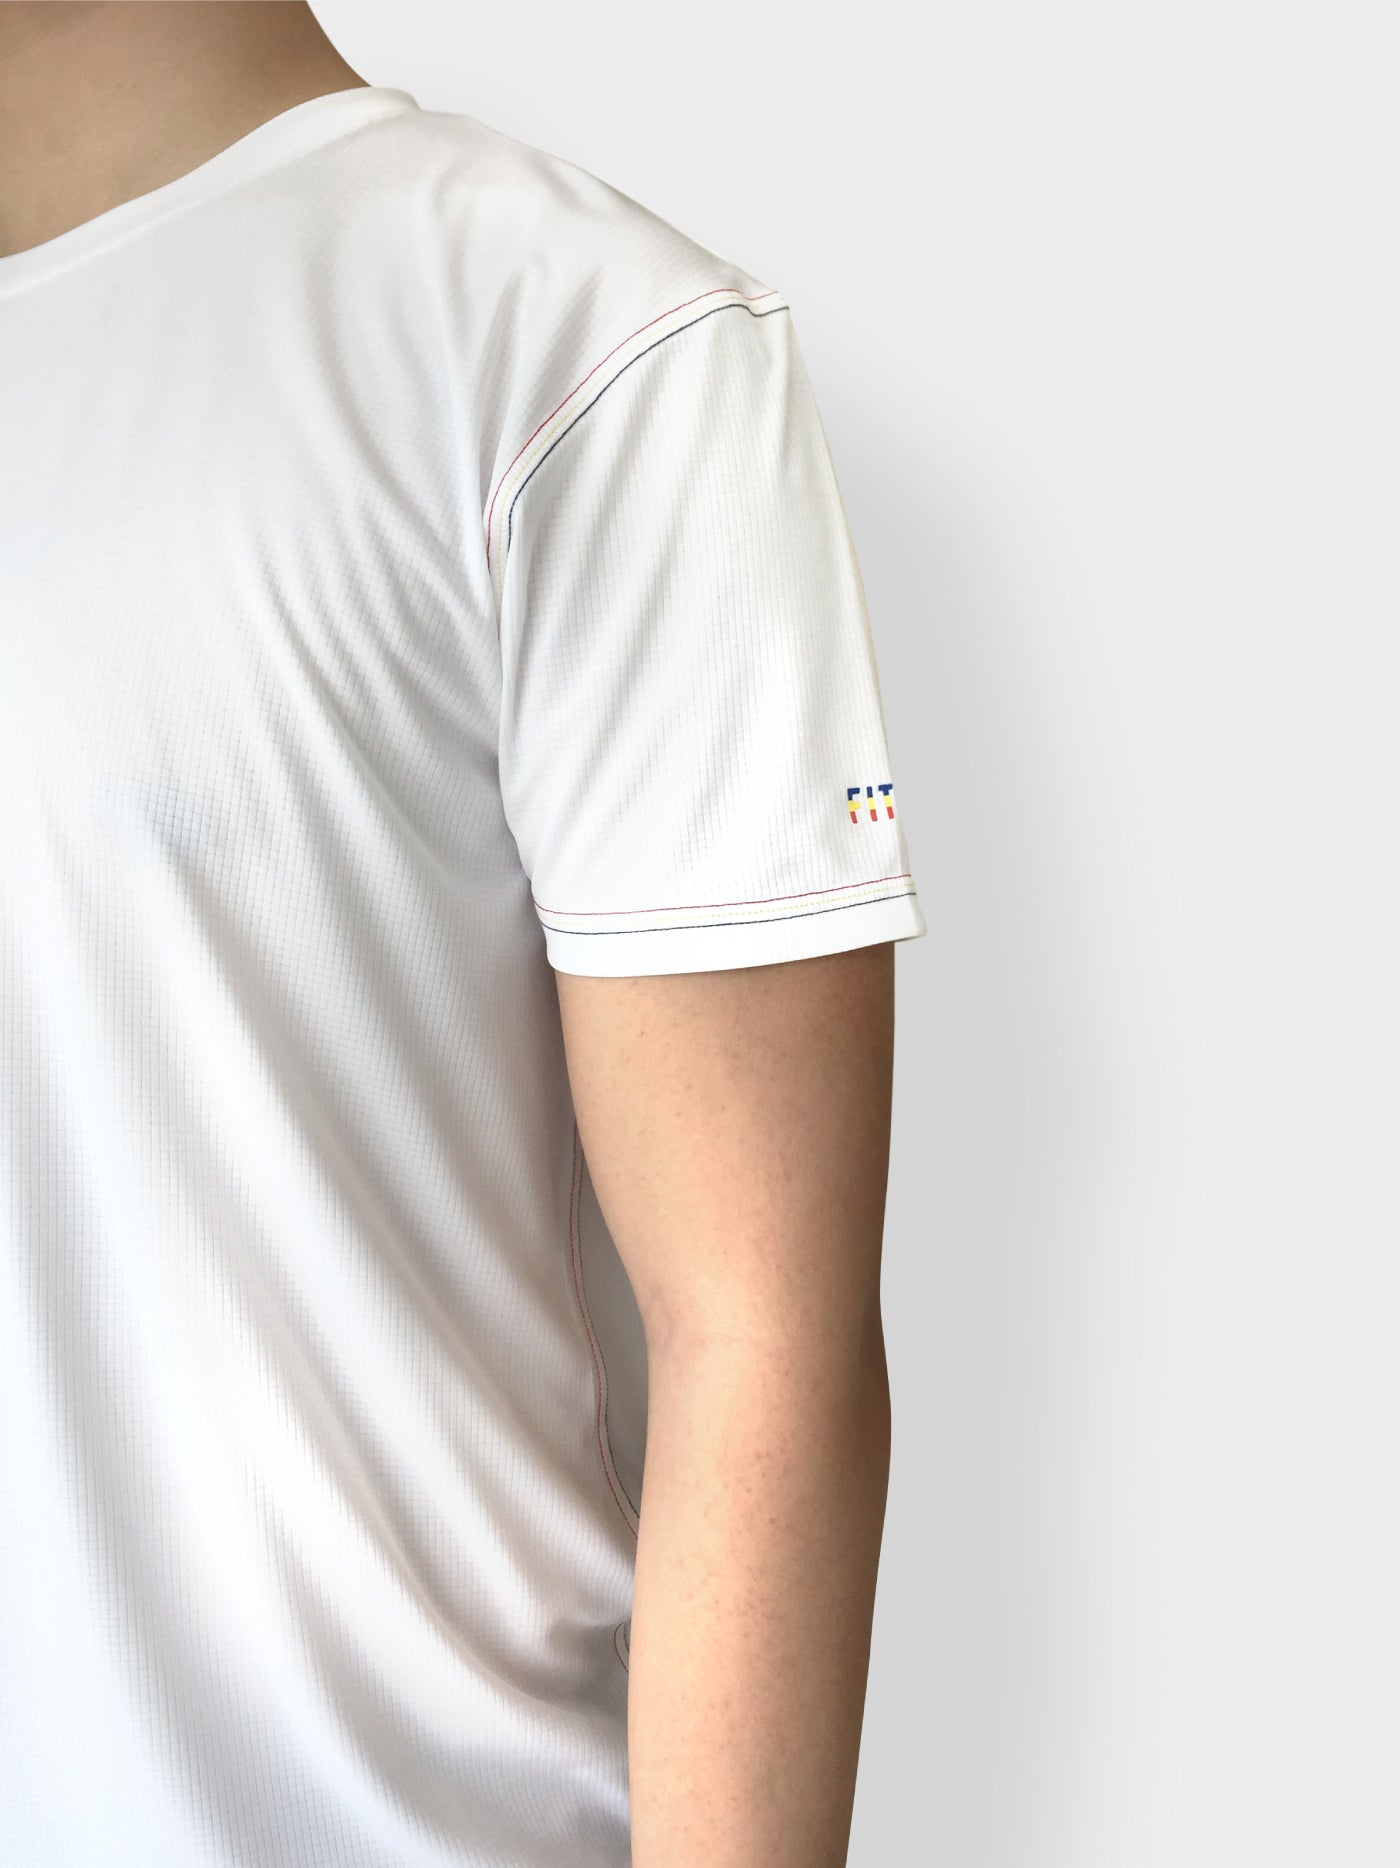 Merdeka Limited Edition T-Shirt Men (Relax Fit)